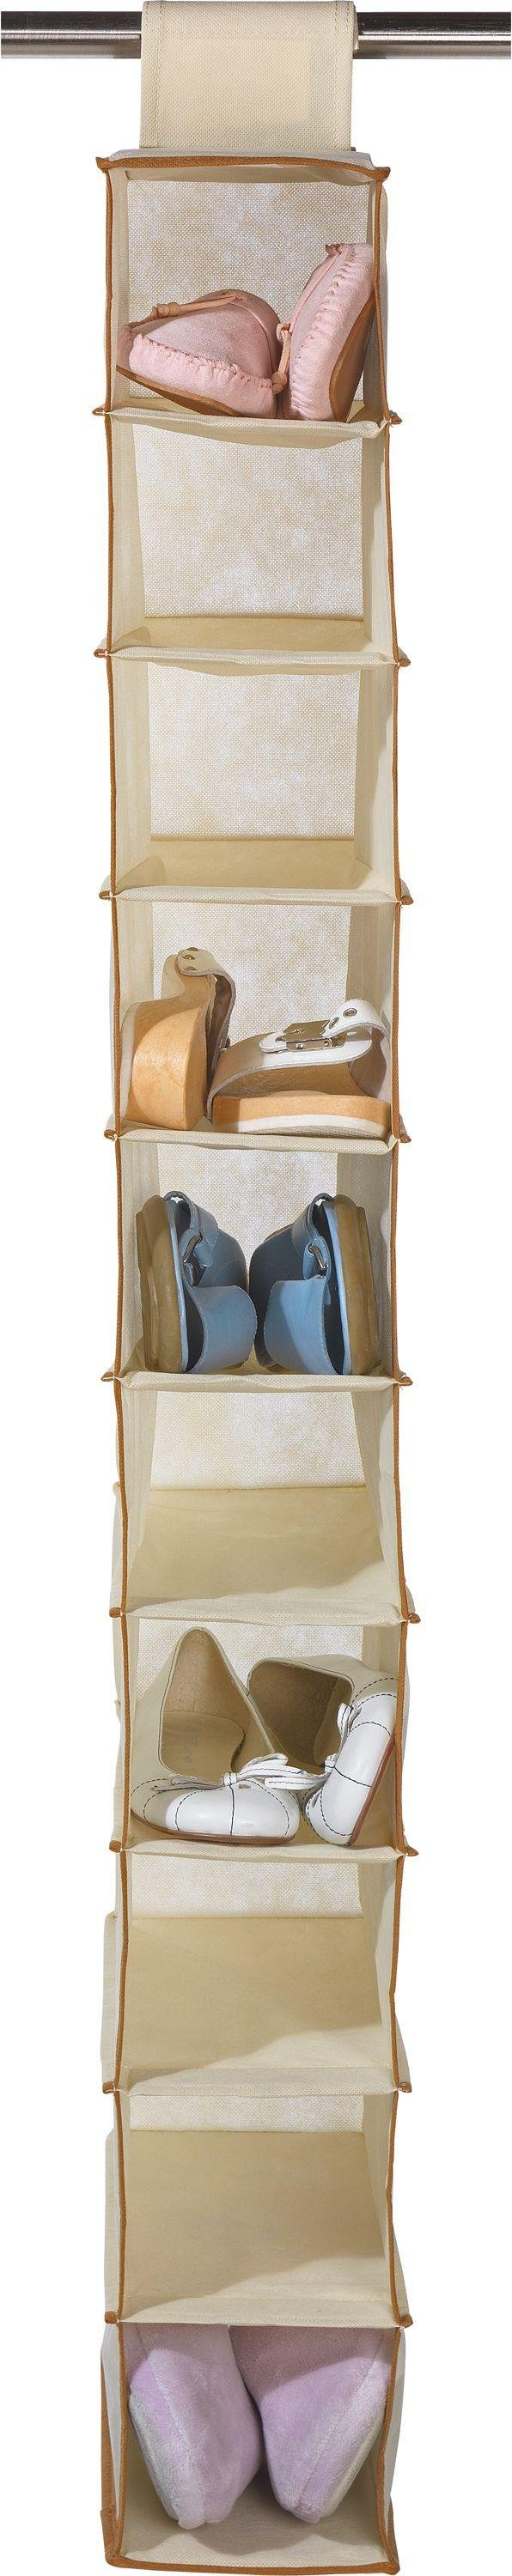 Argos Home 10 Pocket Hanging Canvas Shoe Storage review